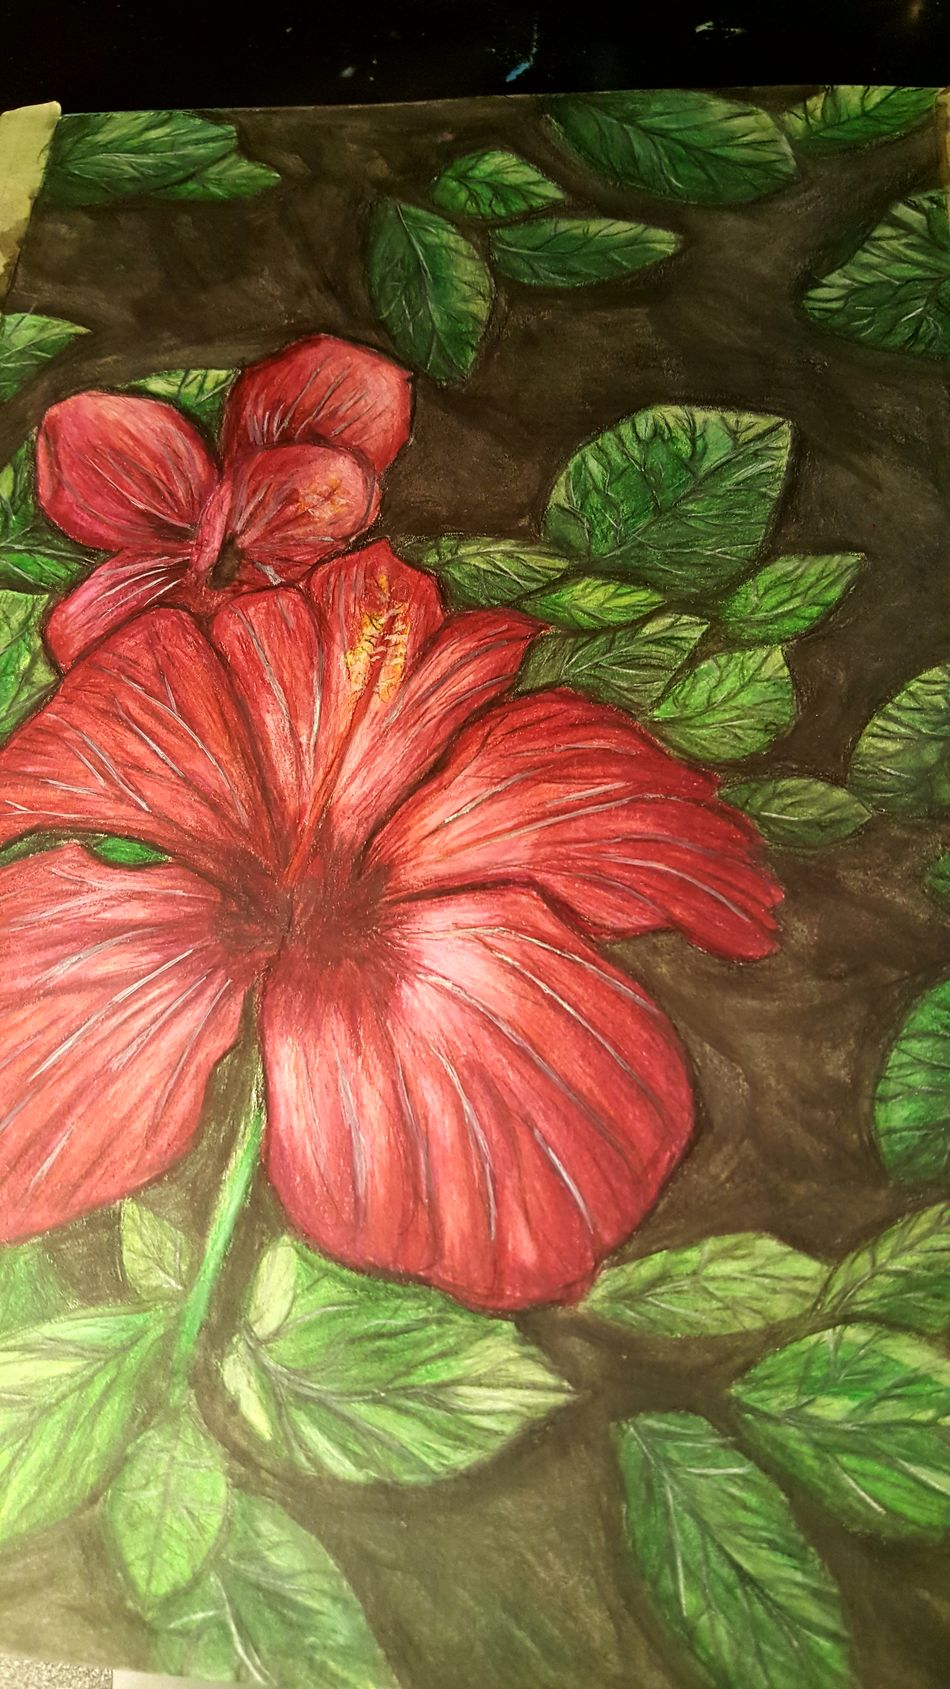 Flower Plant Red Artworks Getting Inspired ArtWork Beauty In Nature Painting Art ArtInMyLife Art And Craft Painting Paintings Artist Oil Painting Colors Creativity Colorful Malerei Draw Kunst The Purist (no Edit, No Filter) Colorpencils Colorpencildrawing Fabercastell Polychromos